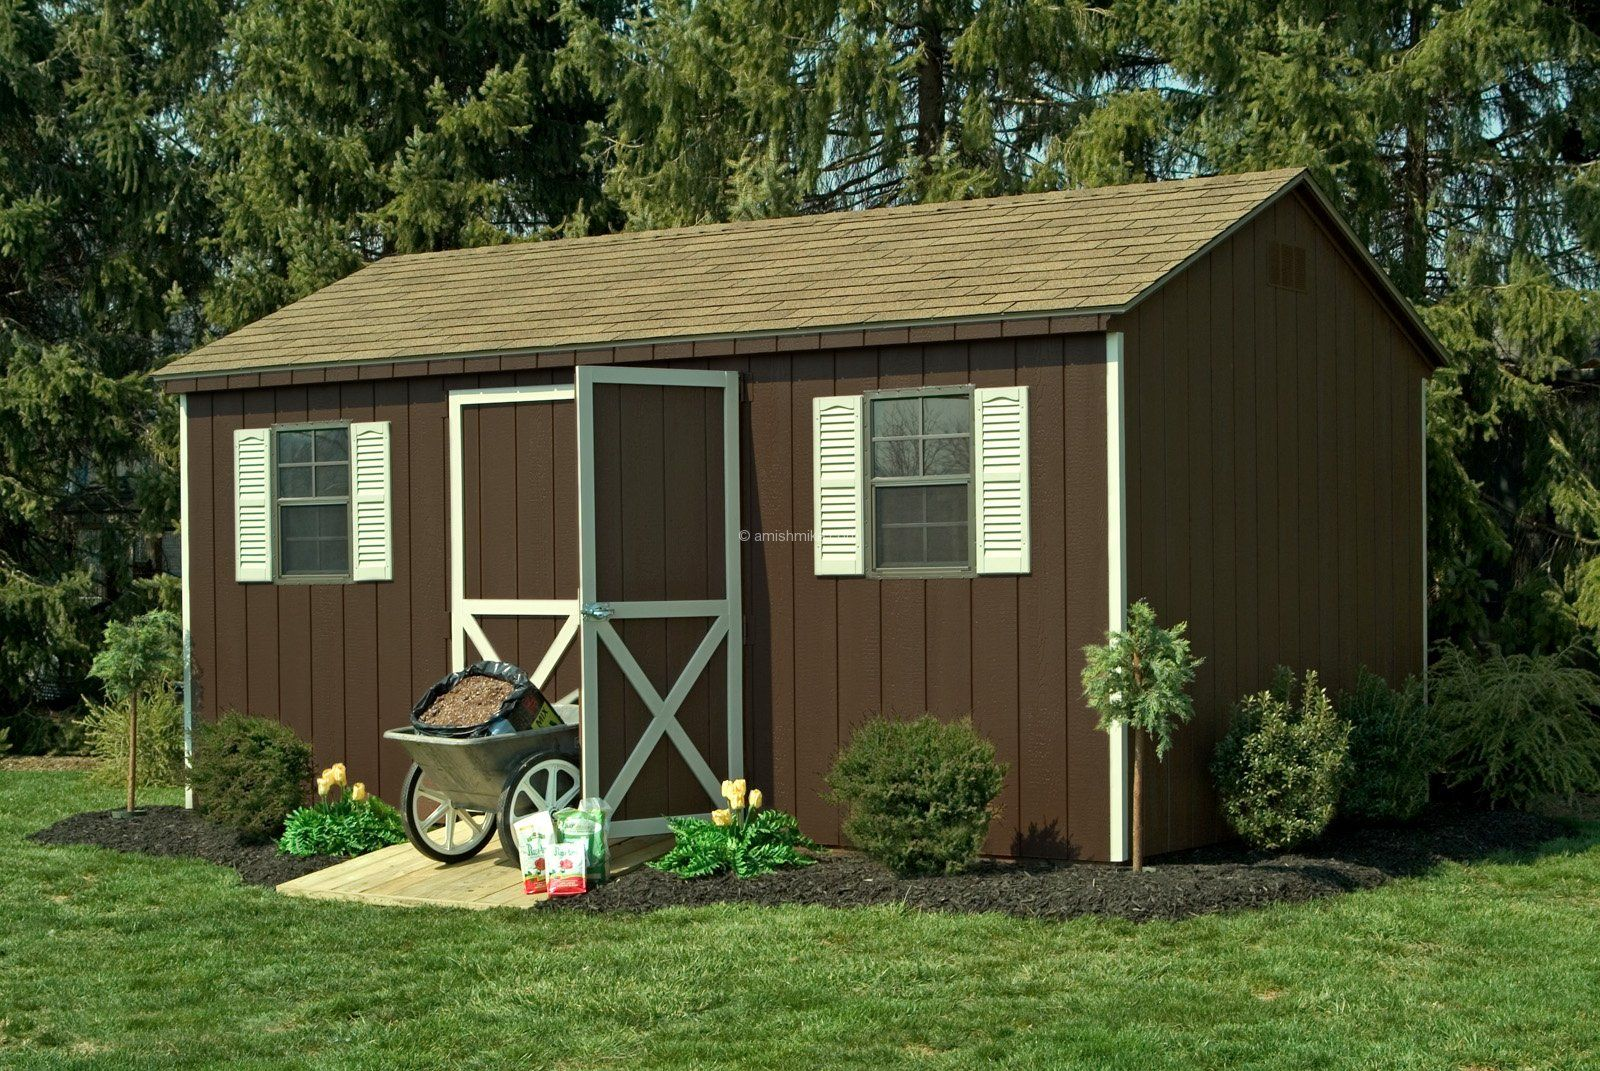 brown shed - Google Search